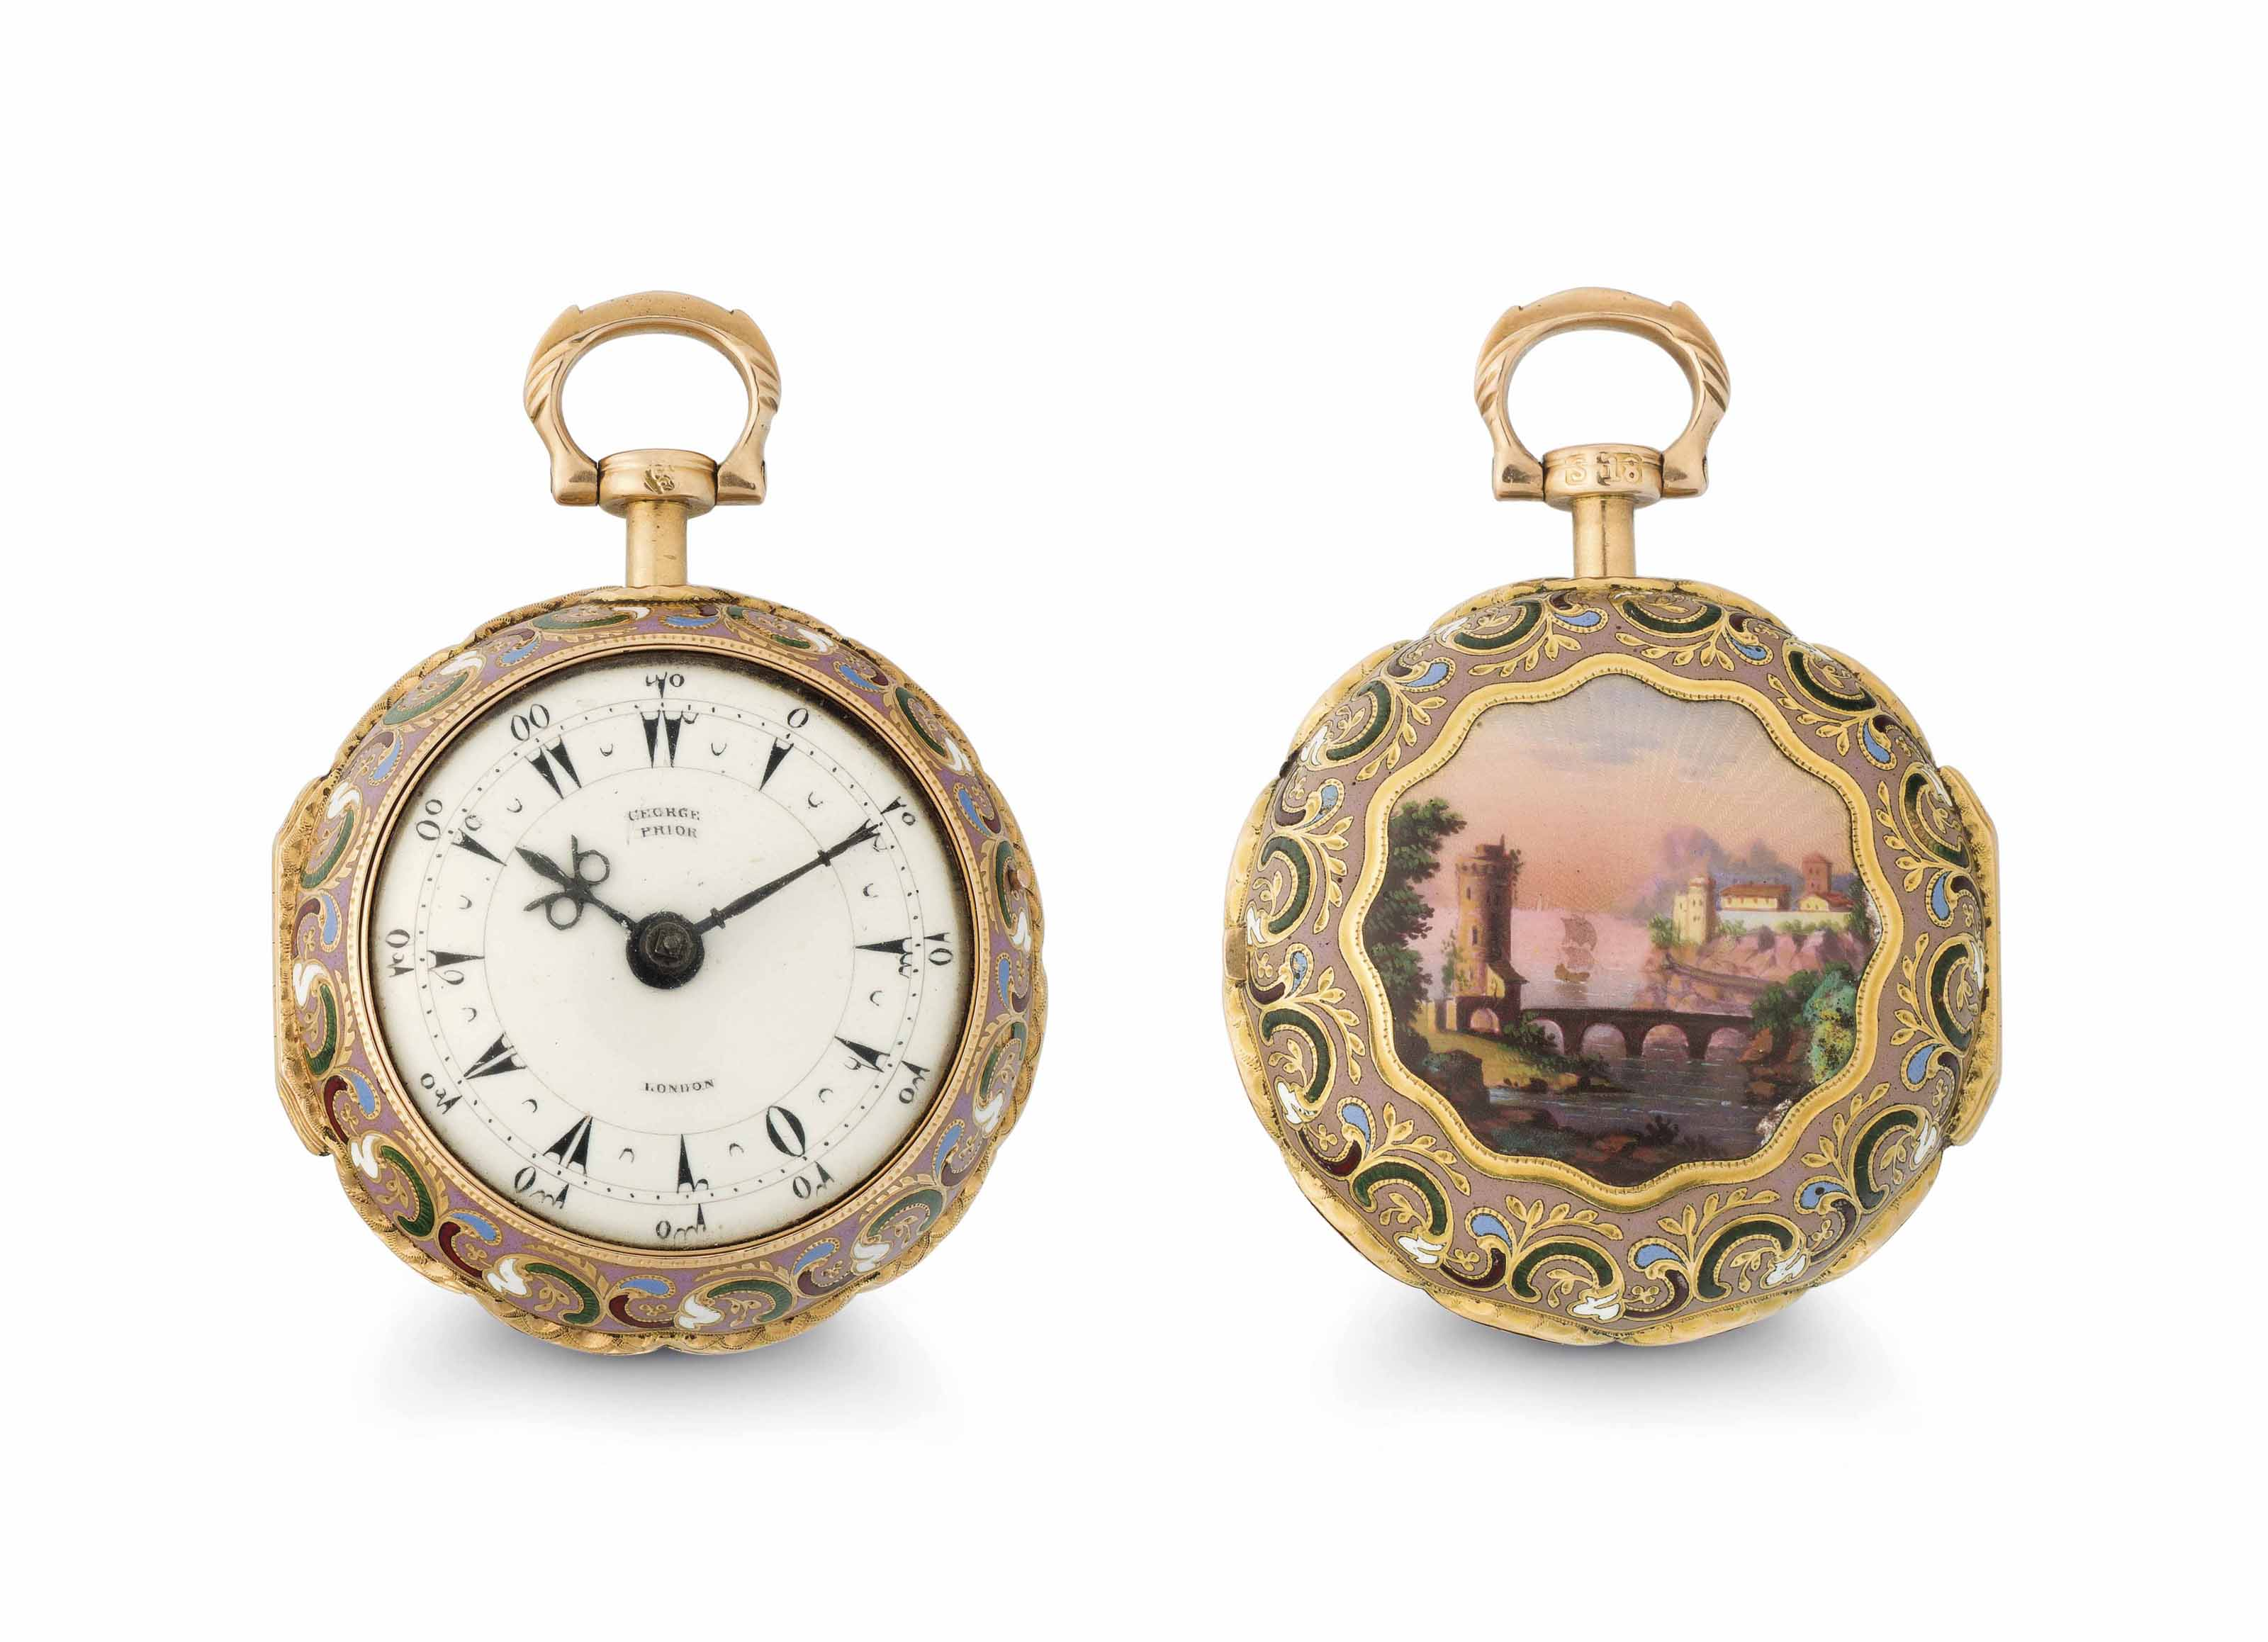 George Prior. A Fine 18k Gold and Enamel Openface Pair-Case Verge Watch Made for the Turkish Market